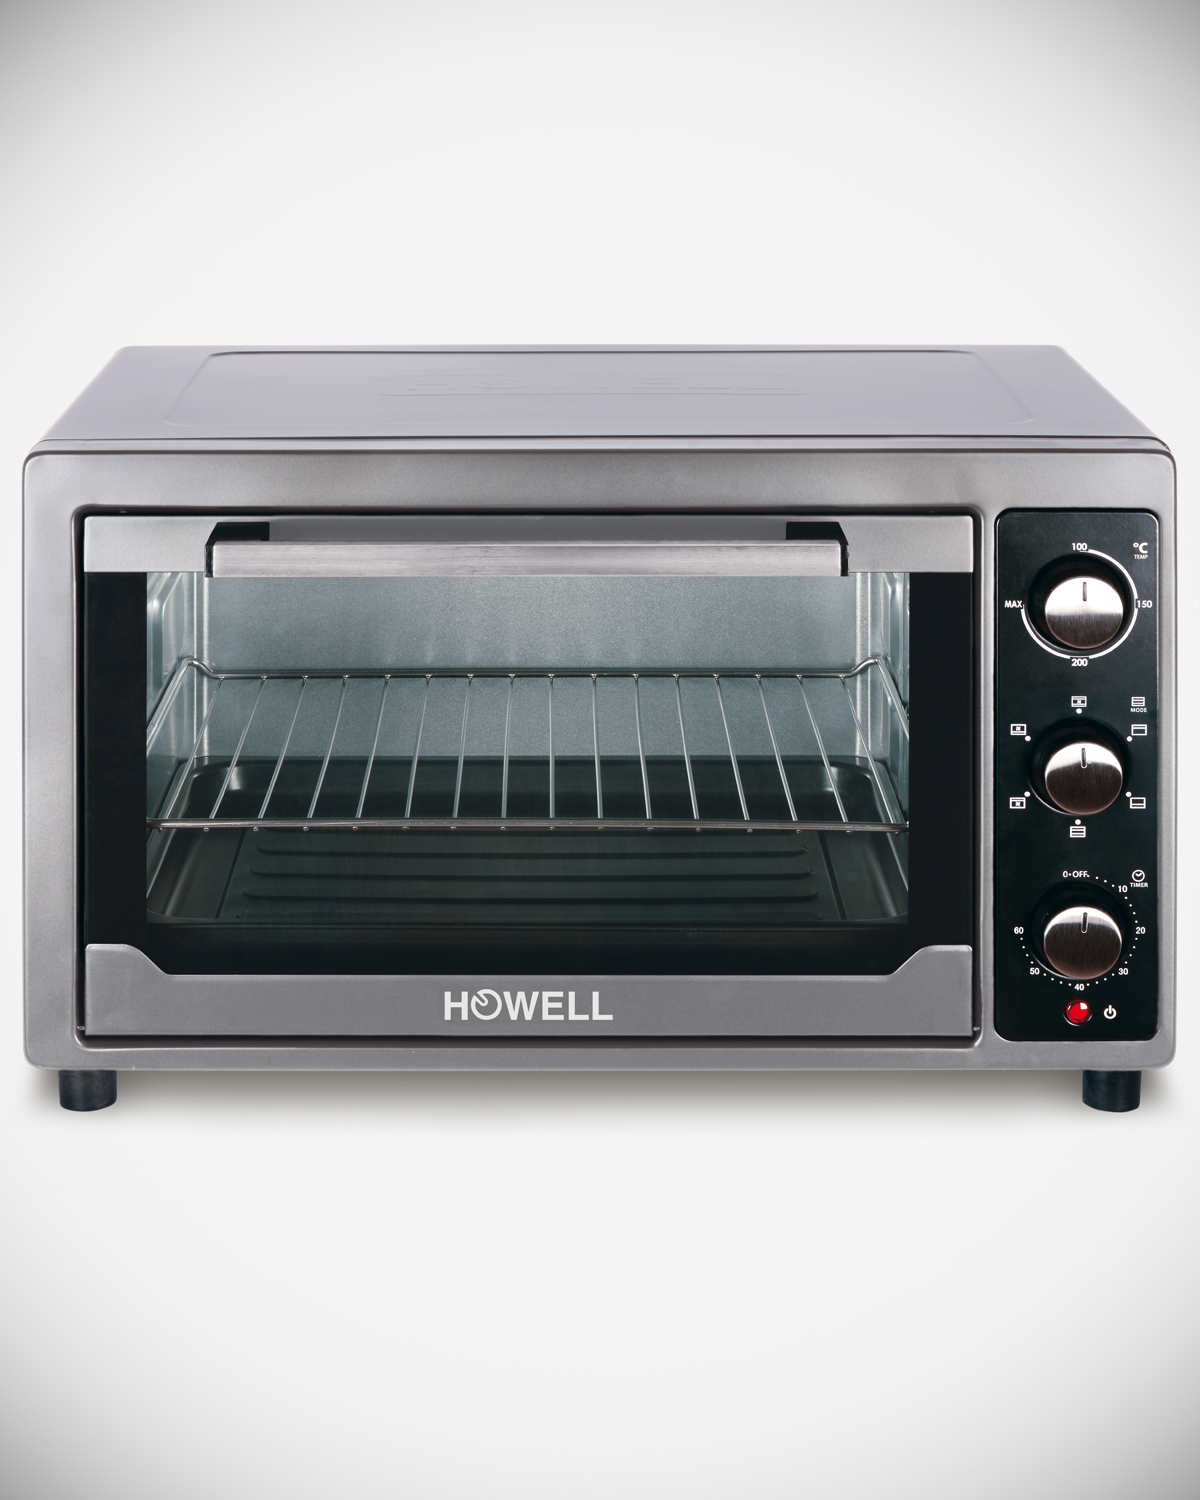 45 liters electric oven with convection and rotisserie HO.FE4502R